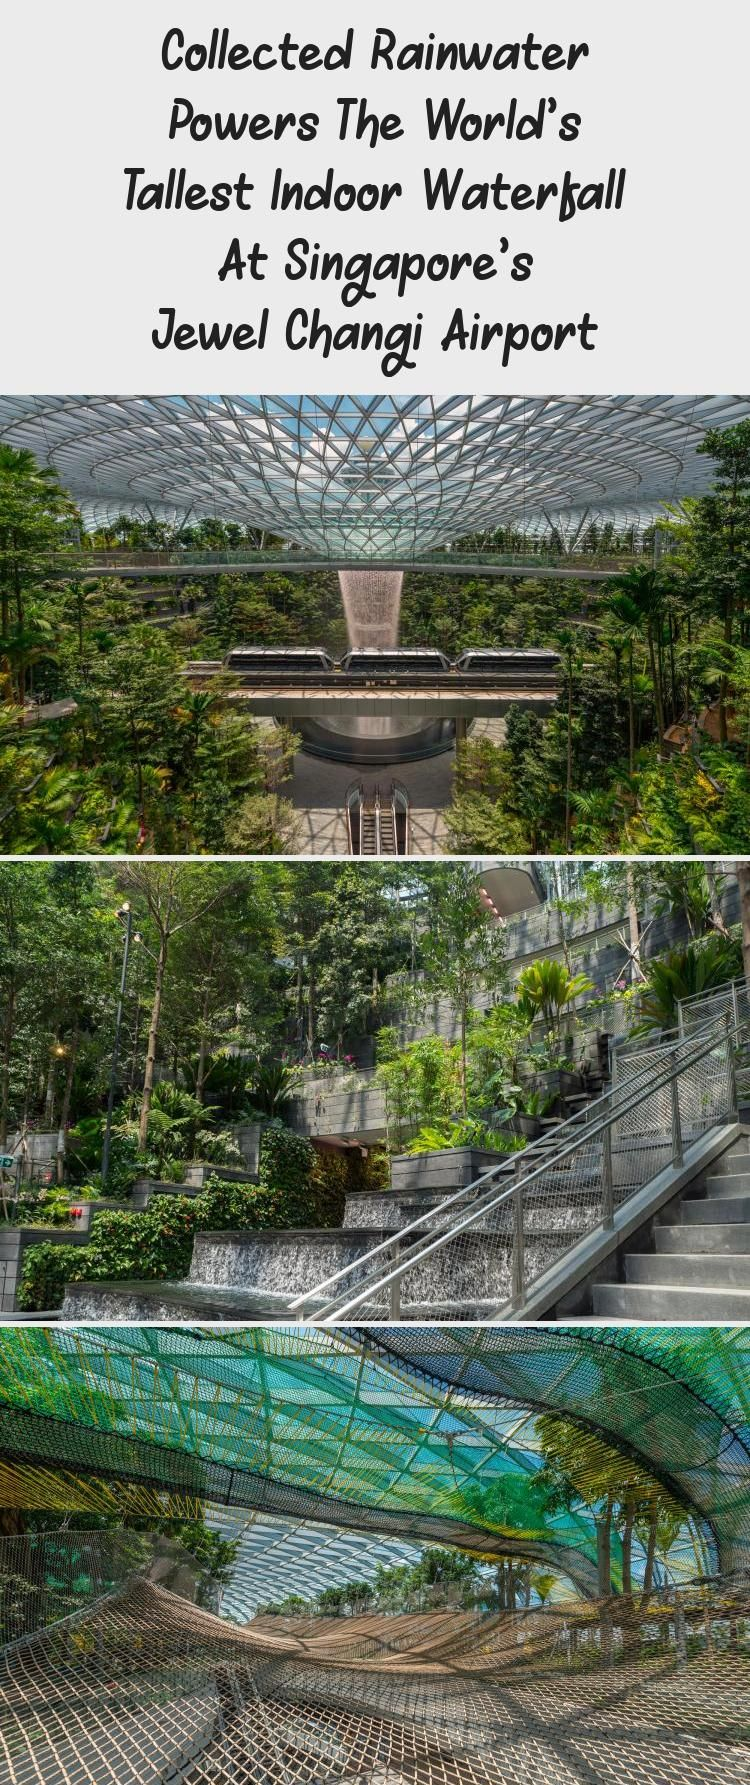 Collected Rainwater Powers The World S Tallest Indoor Waterfall At Singapore S Jewel Changi Airport In 2020 Indoor Waterfall Changi Rain Water Collection